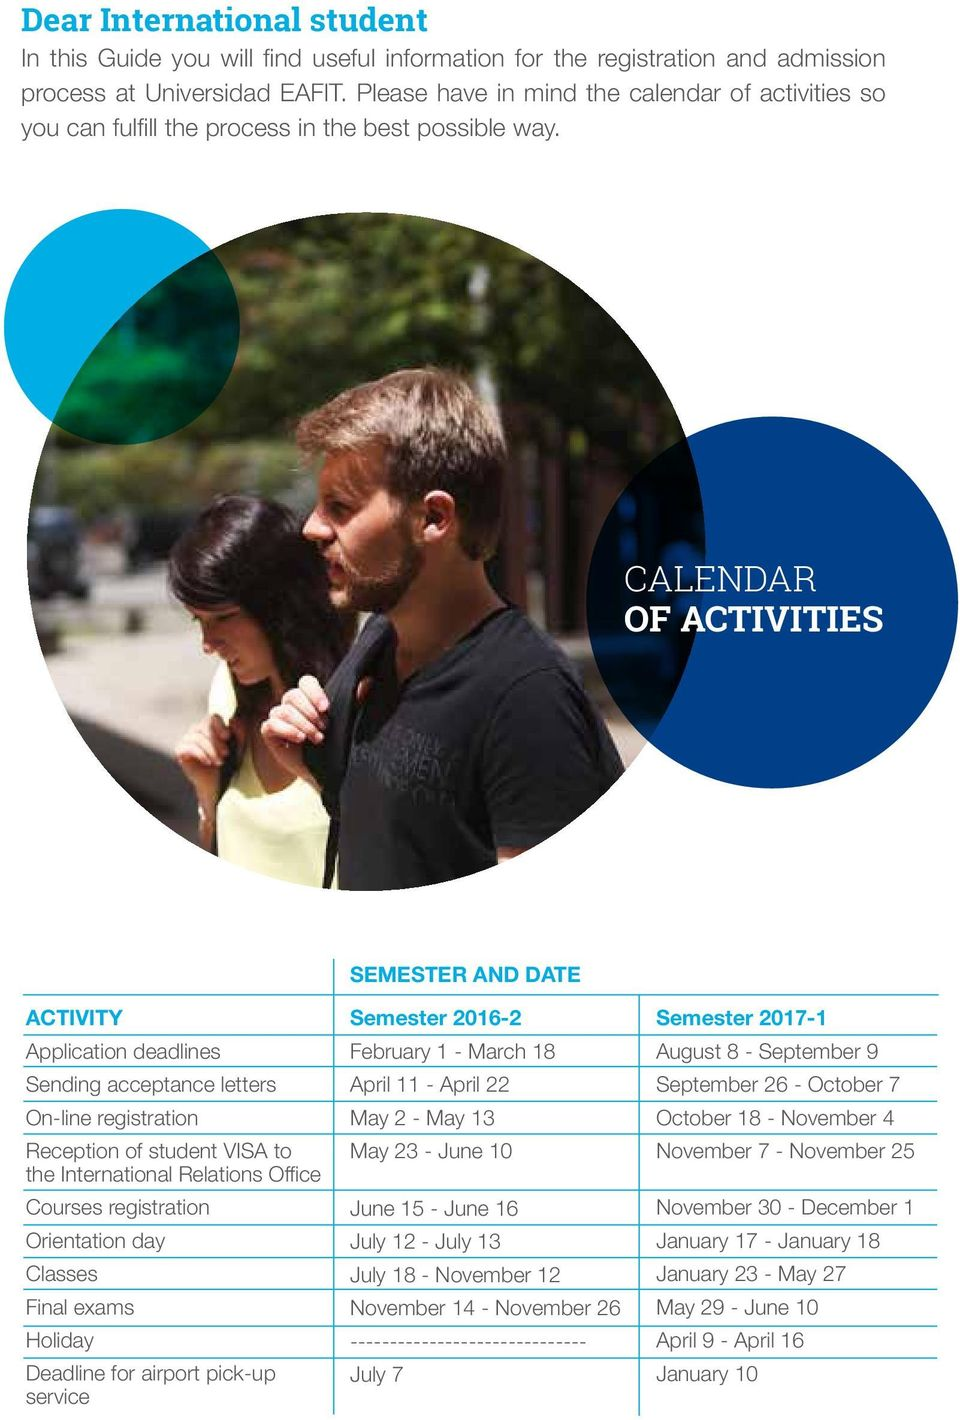 CALENDAR OF ACTIVITIES SEMESTER AND DATE ACTIVITY Application deadlines Sending acceptance letters On-line registration Reception of student VISA to the International Relations Office Courses